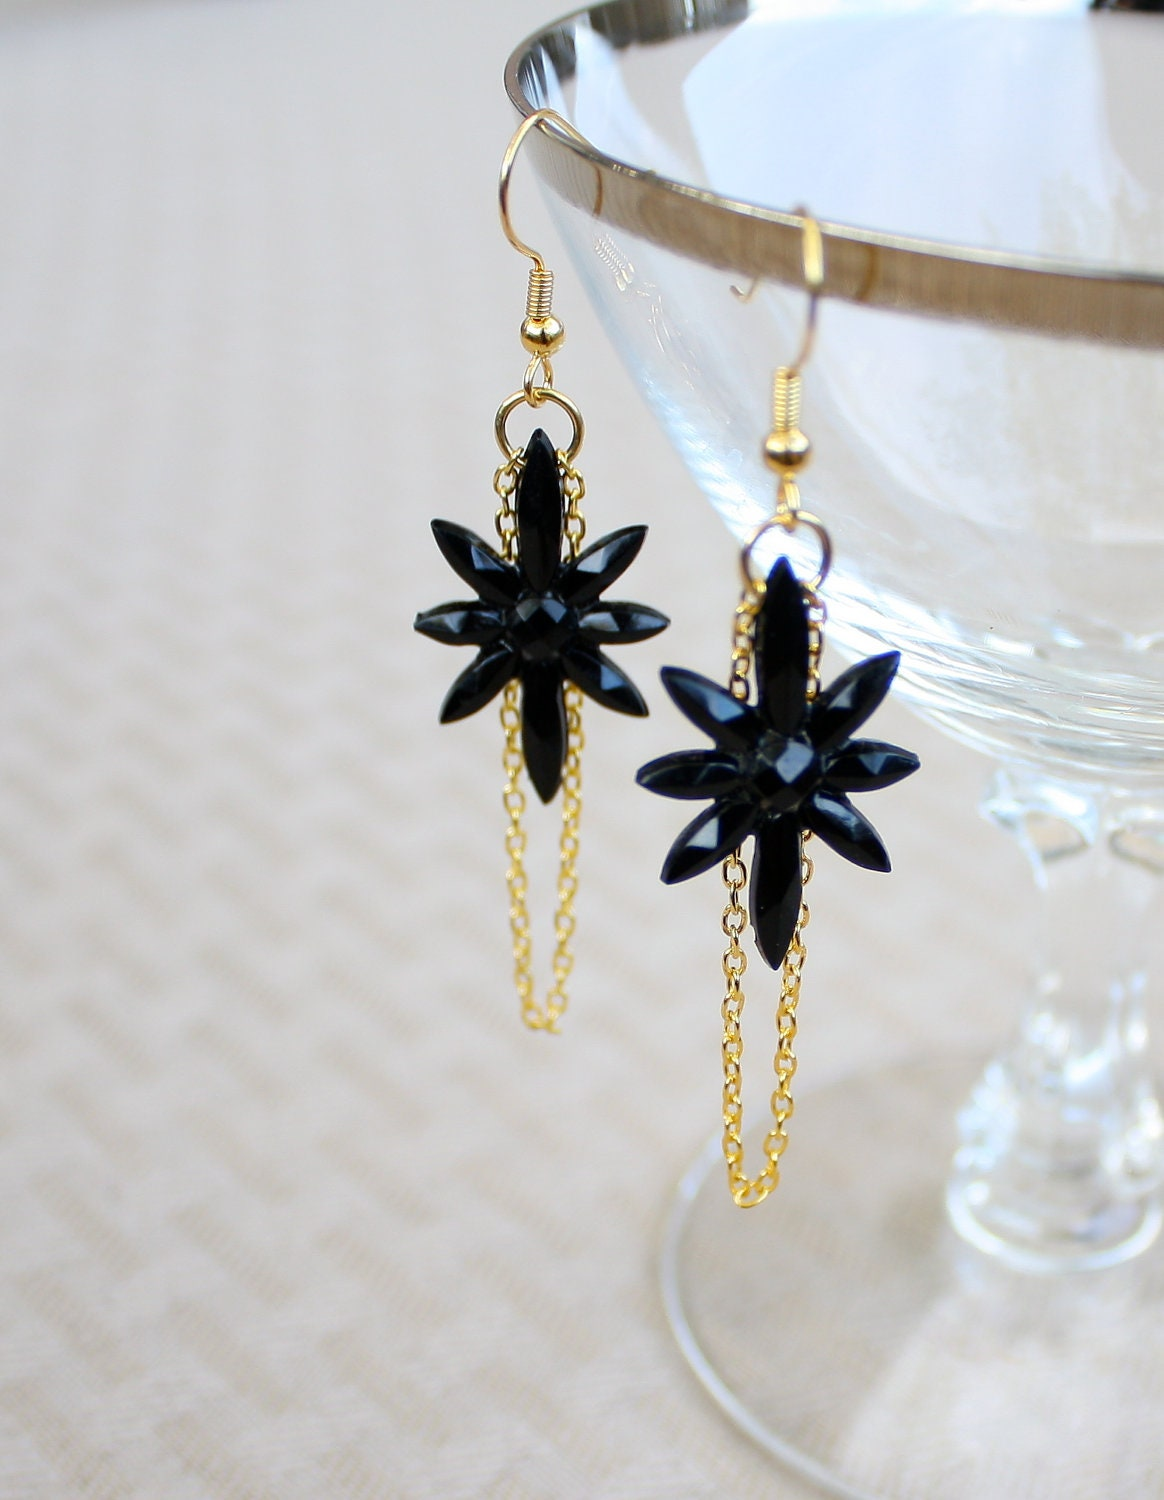 Vintage Star Earrings Black Starburst with Gold Chain by Montrigue